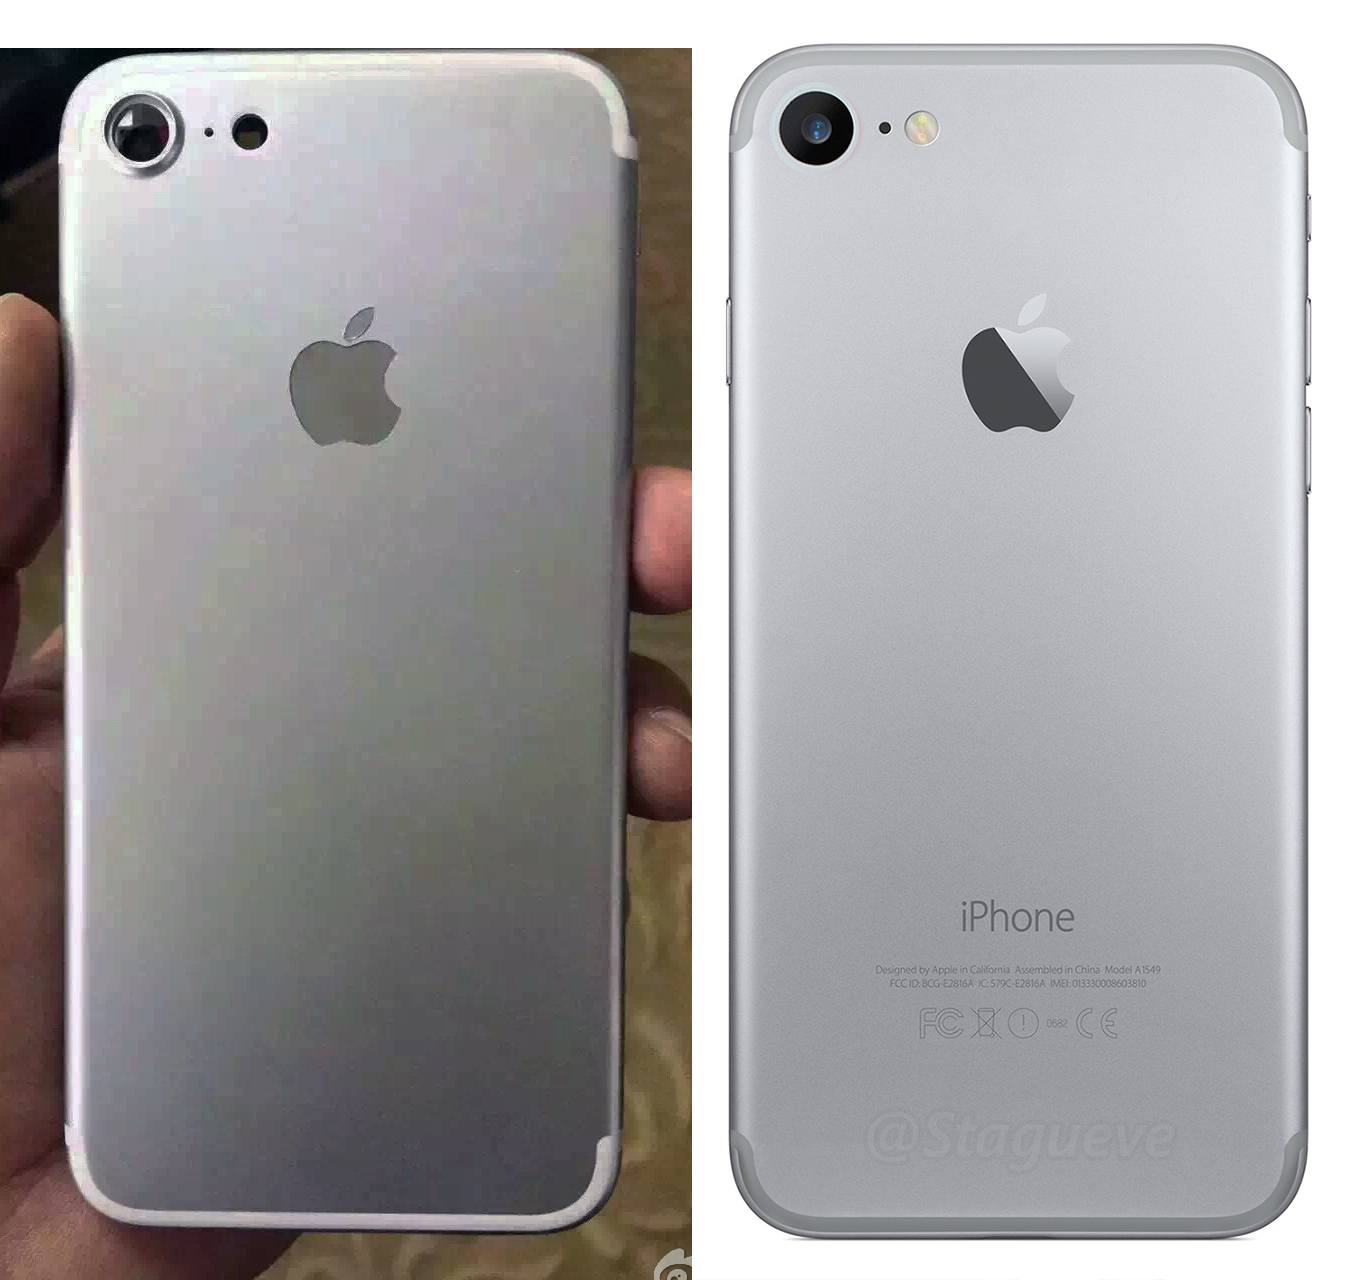 iPhone-7-Leak-vs-iPhone-7-Render